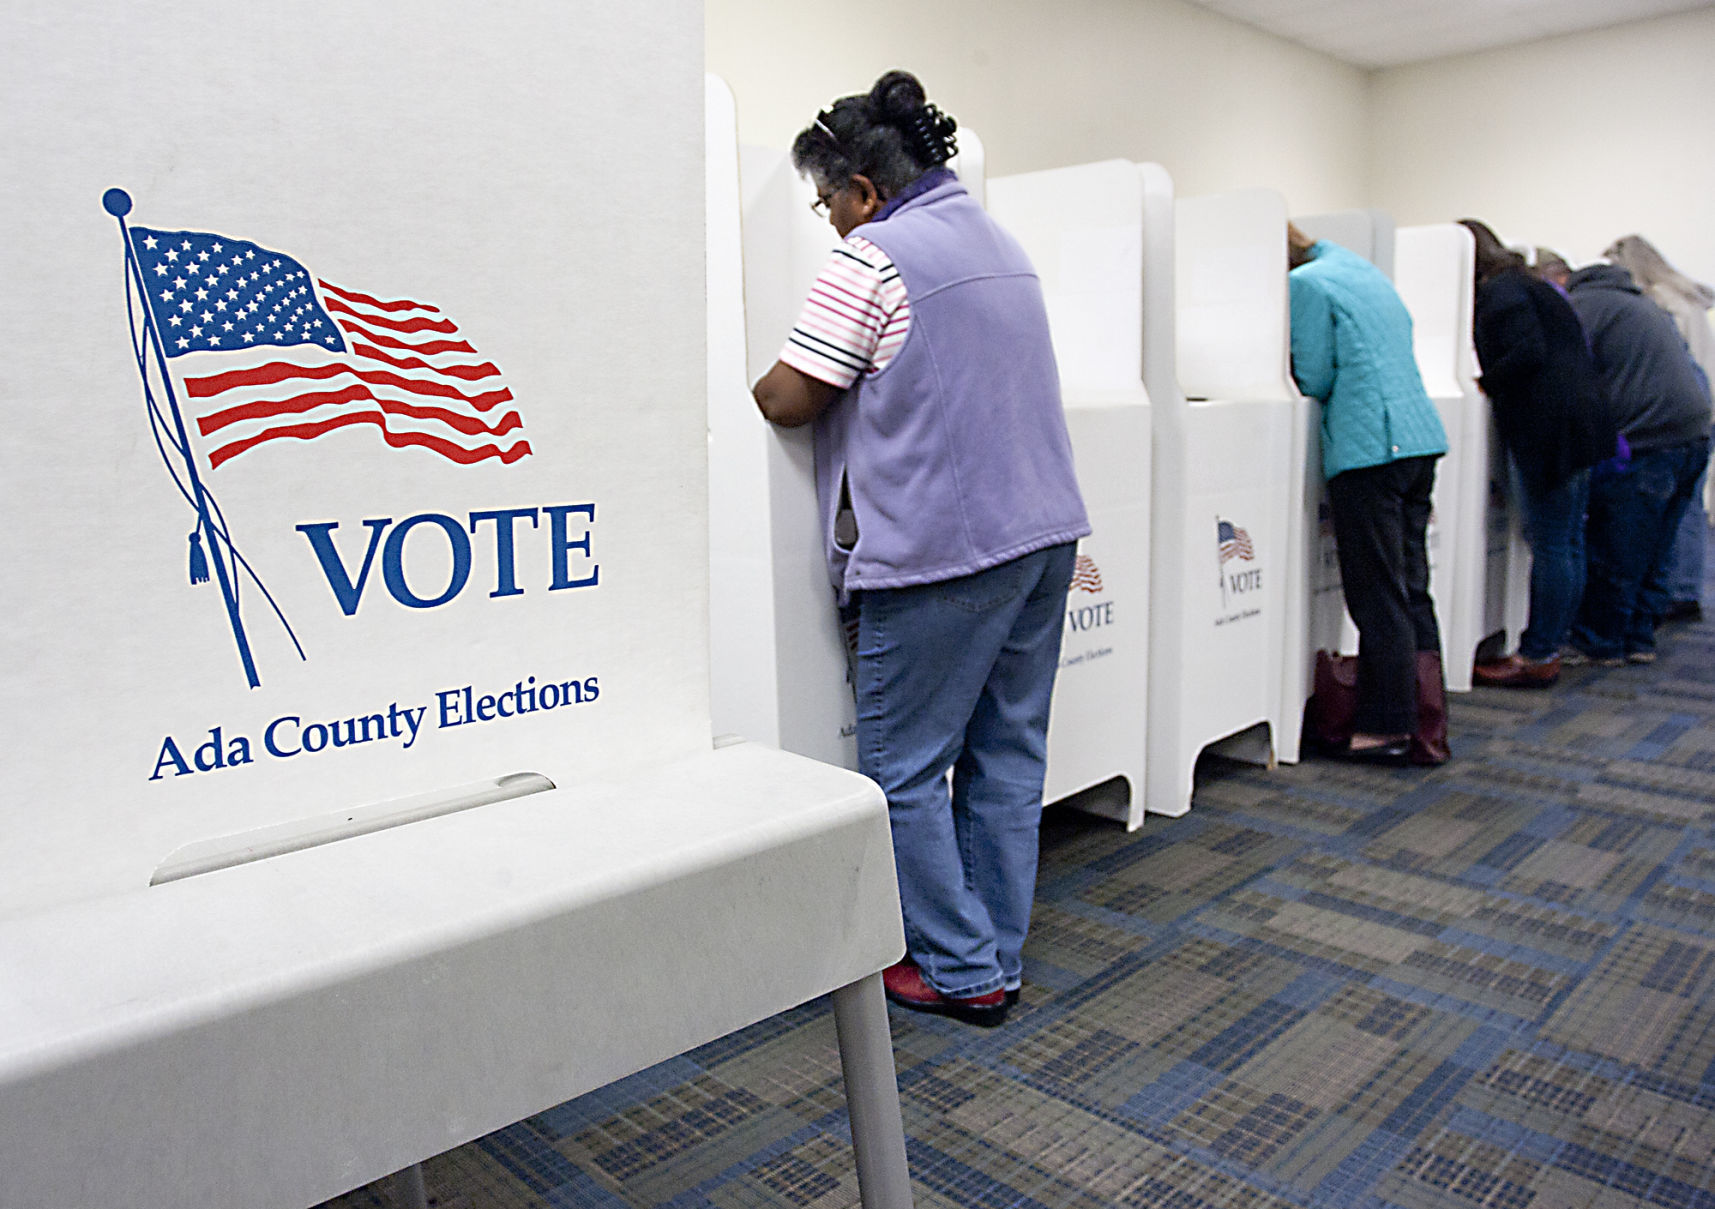 Ada County irons out accessibility issues ahead of election | Idaho Press